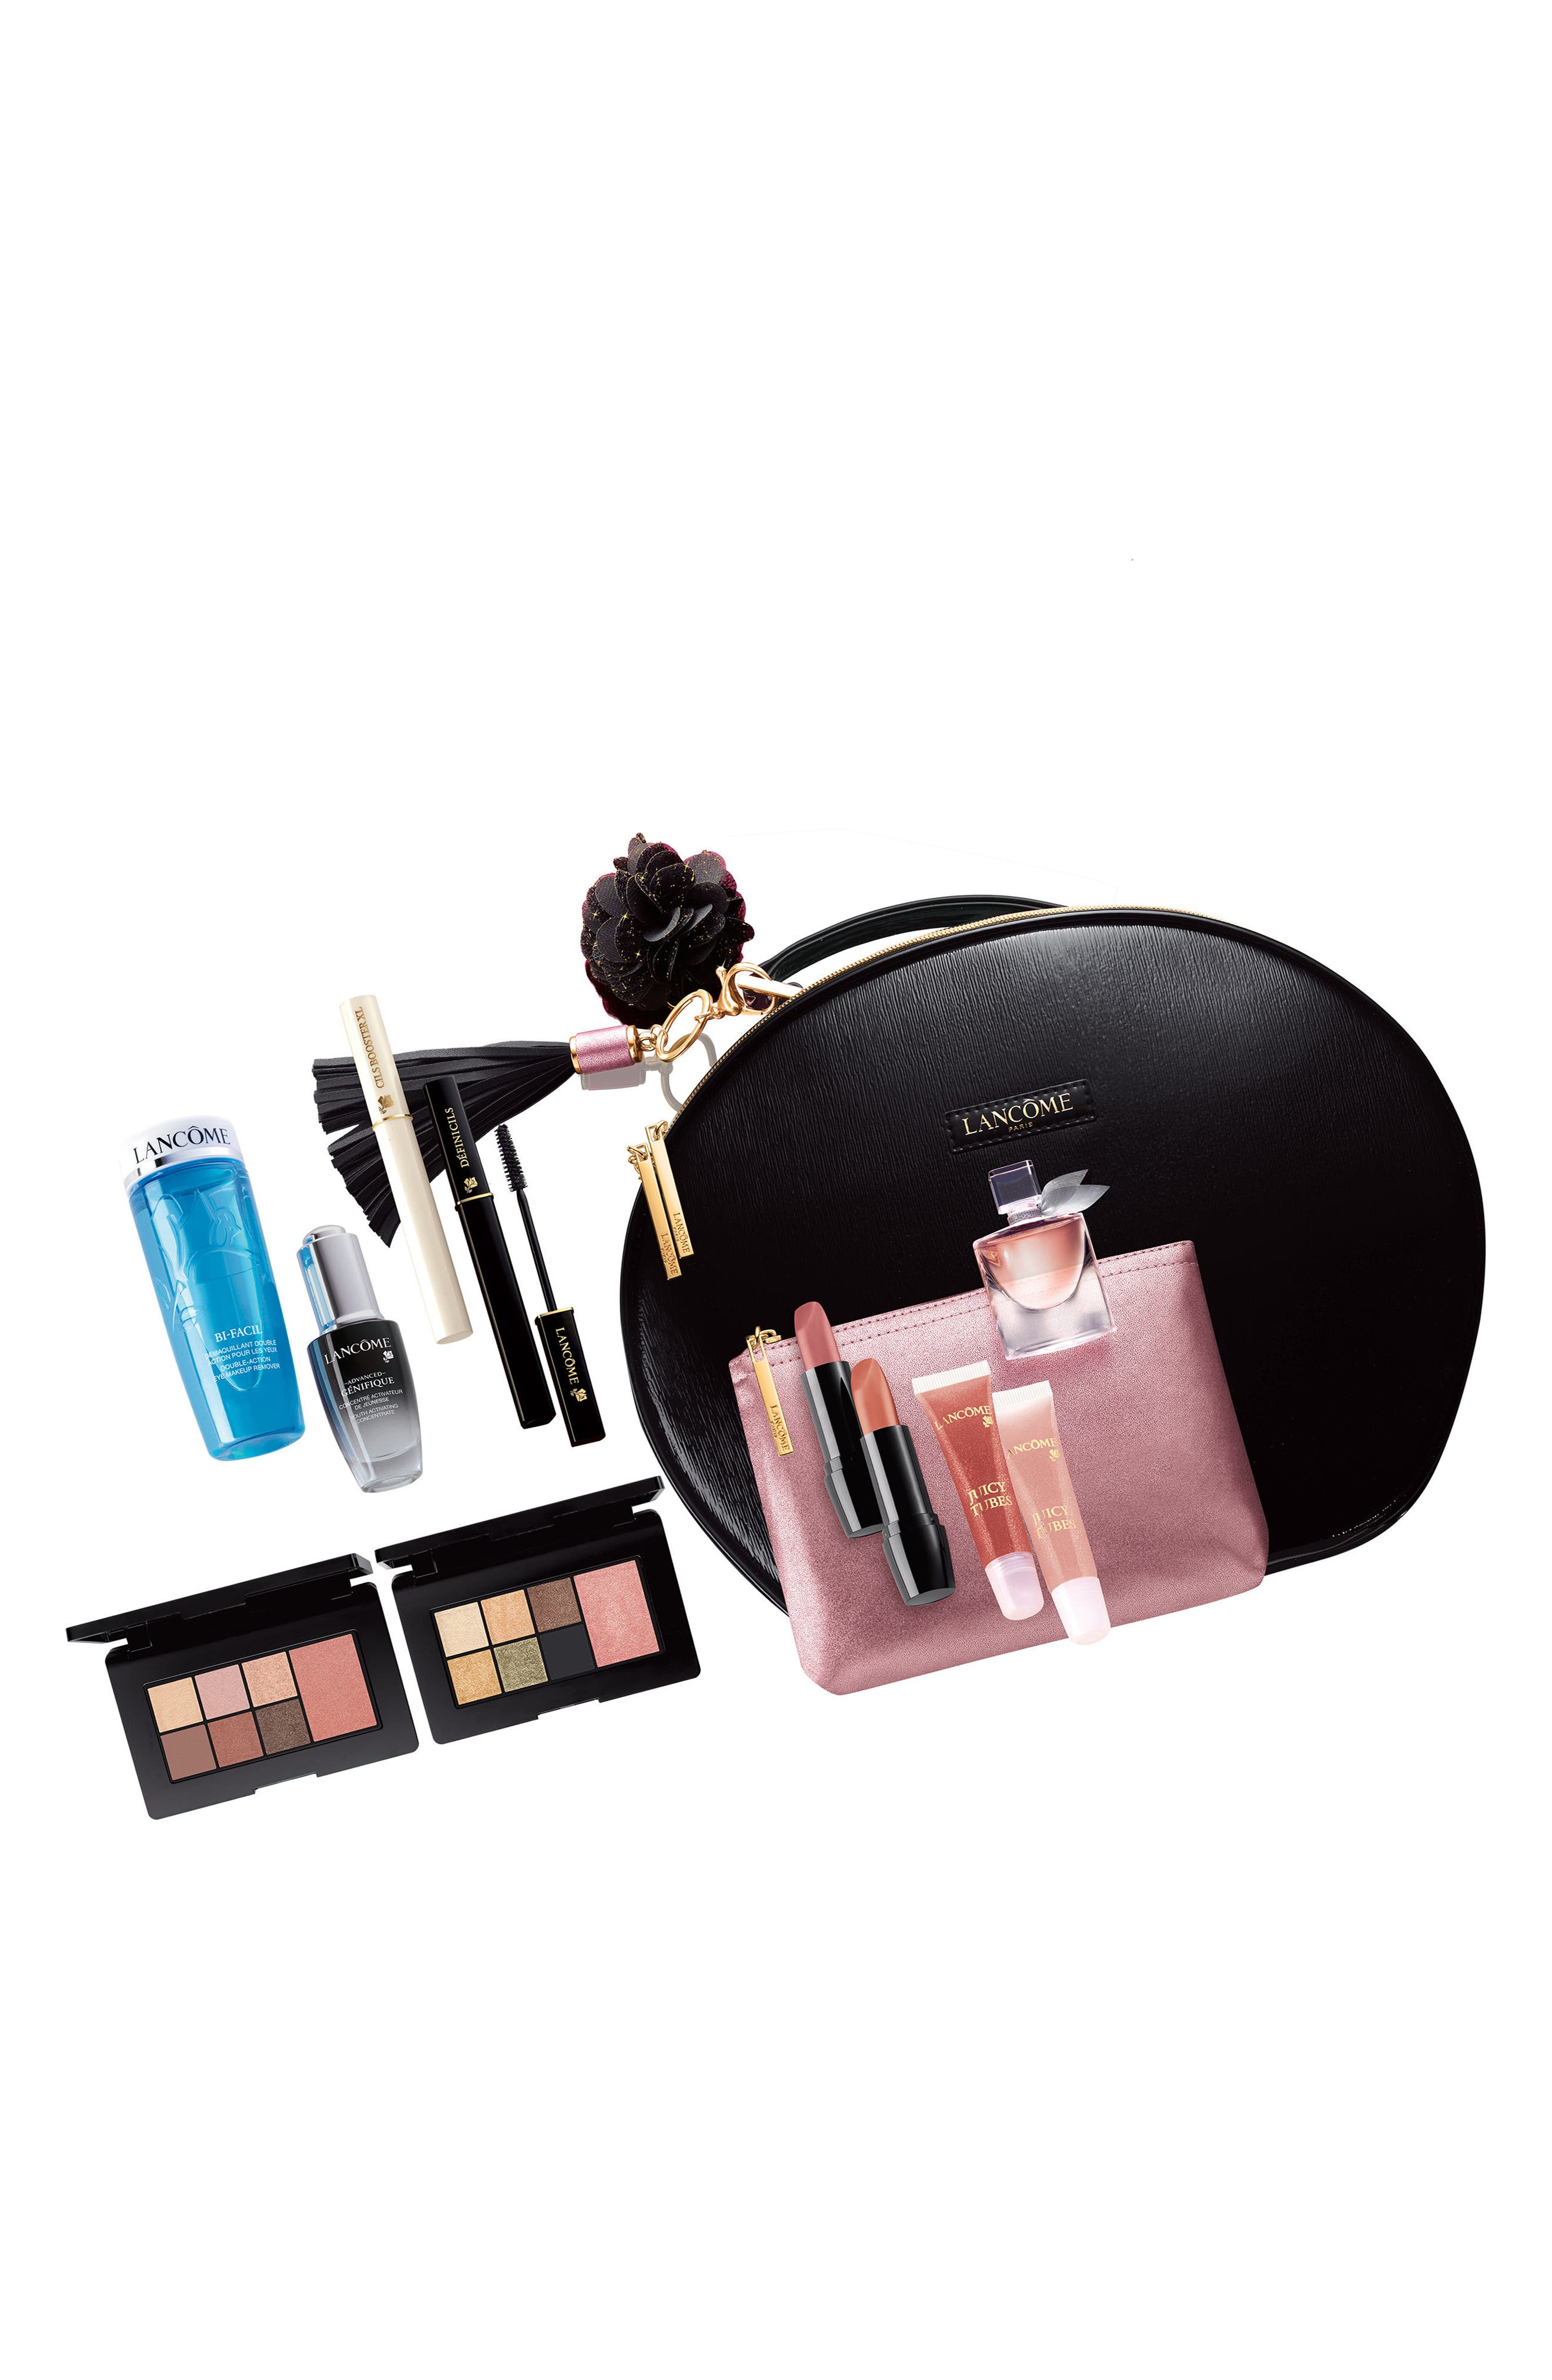 Lancôme Le Parisian Holiday Color Collection (Purchase with any Lancôme Purchase)